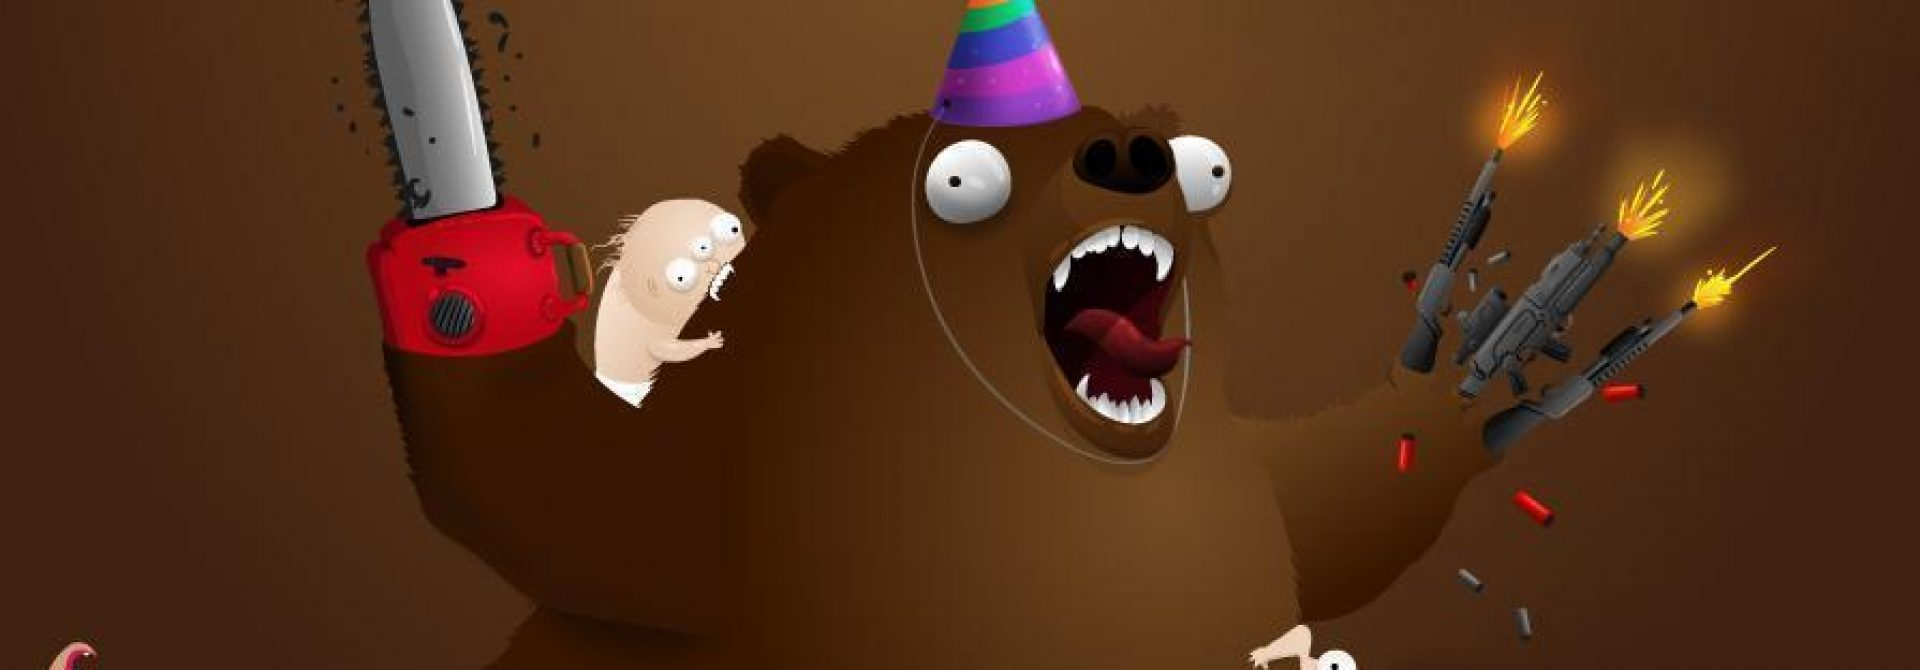 Bears Vs. Babies: From The Makers Of Exploding Kittens